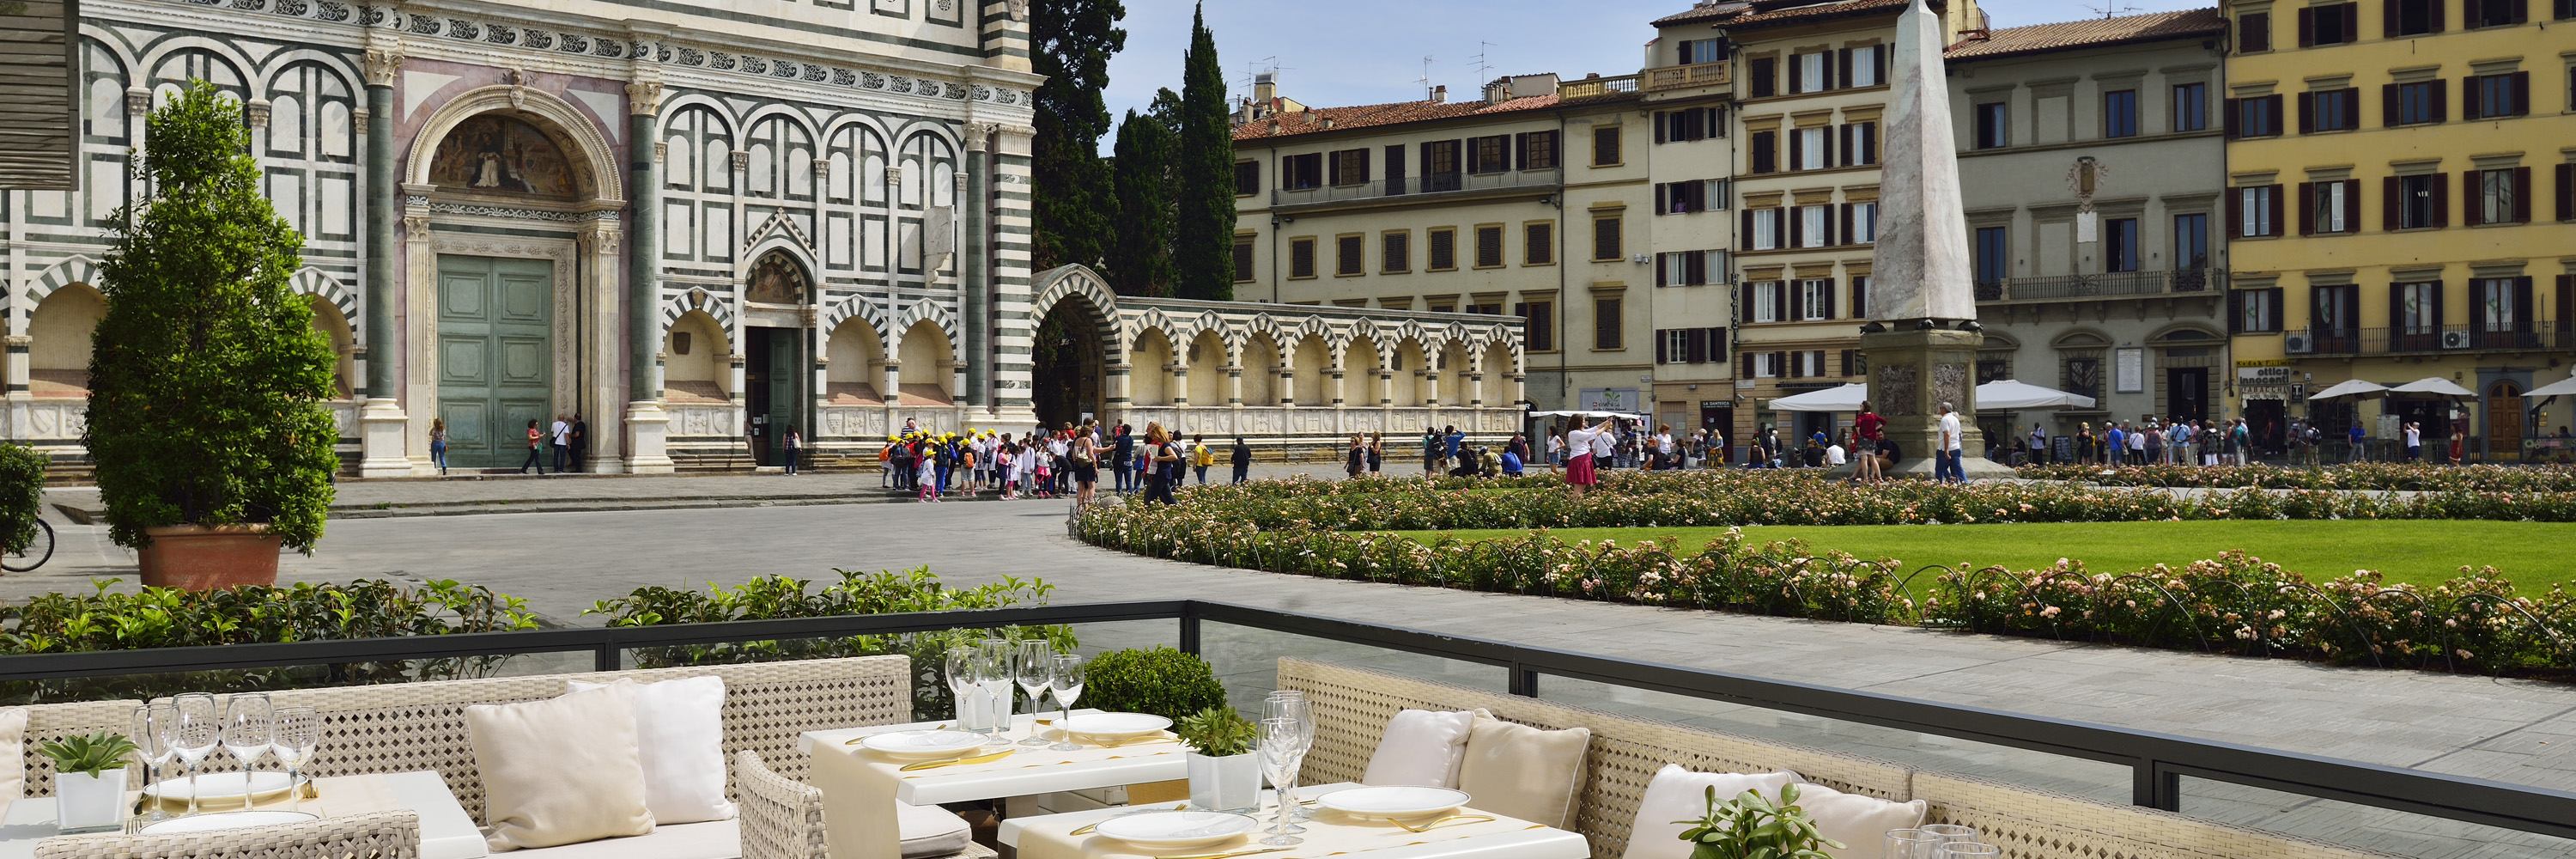 Grand Hotel Minerva Florence Italy Updated 2020 Official Website Of Jp Moser